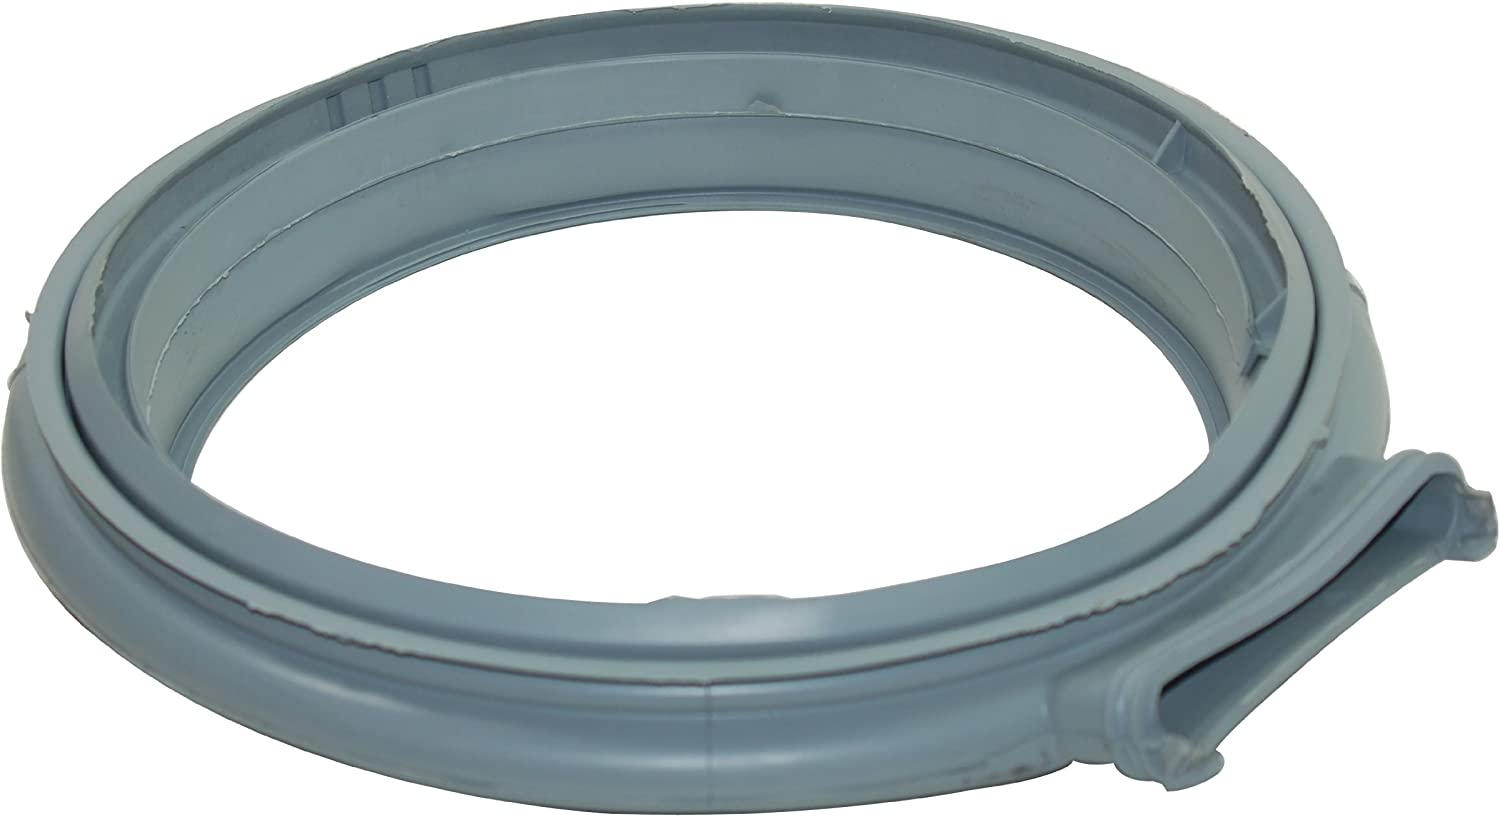 Ignis Philips Whirlpool Washing Machine Door Seal Gasket. Genuine Part Number 481946669654